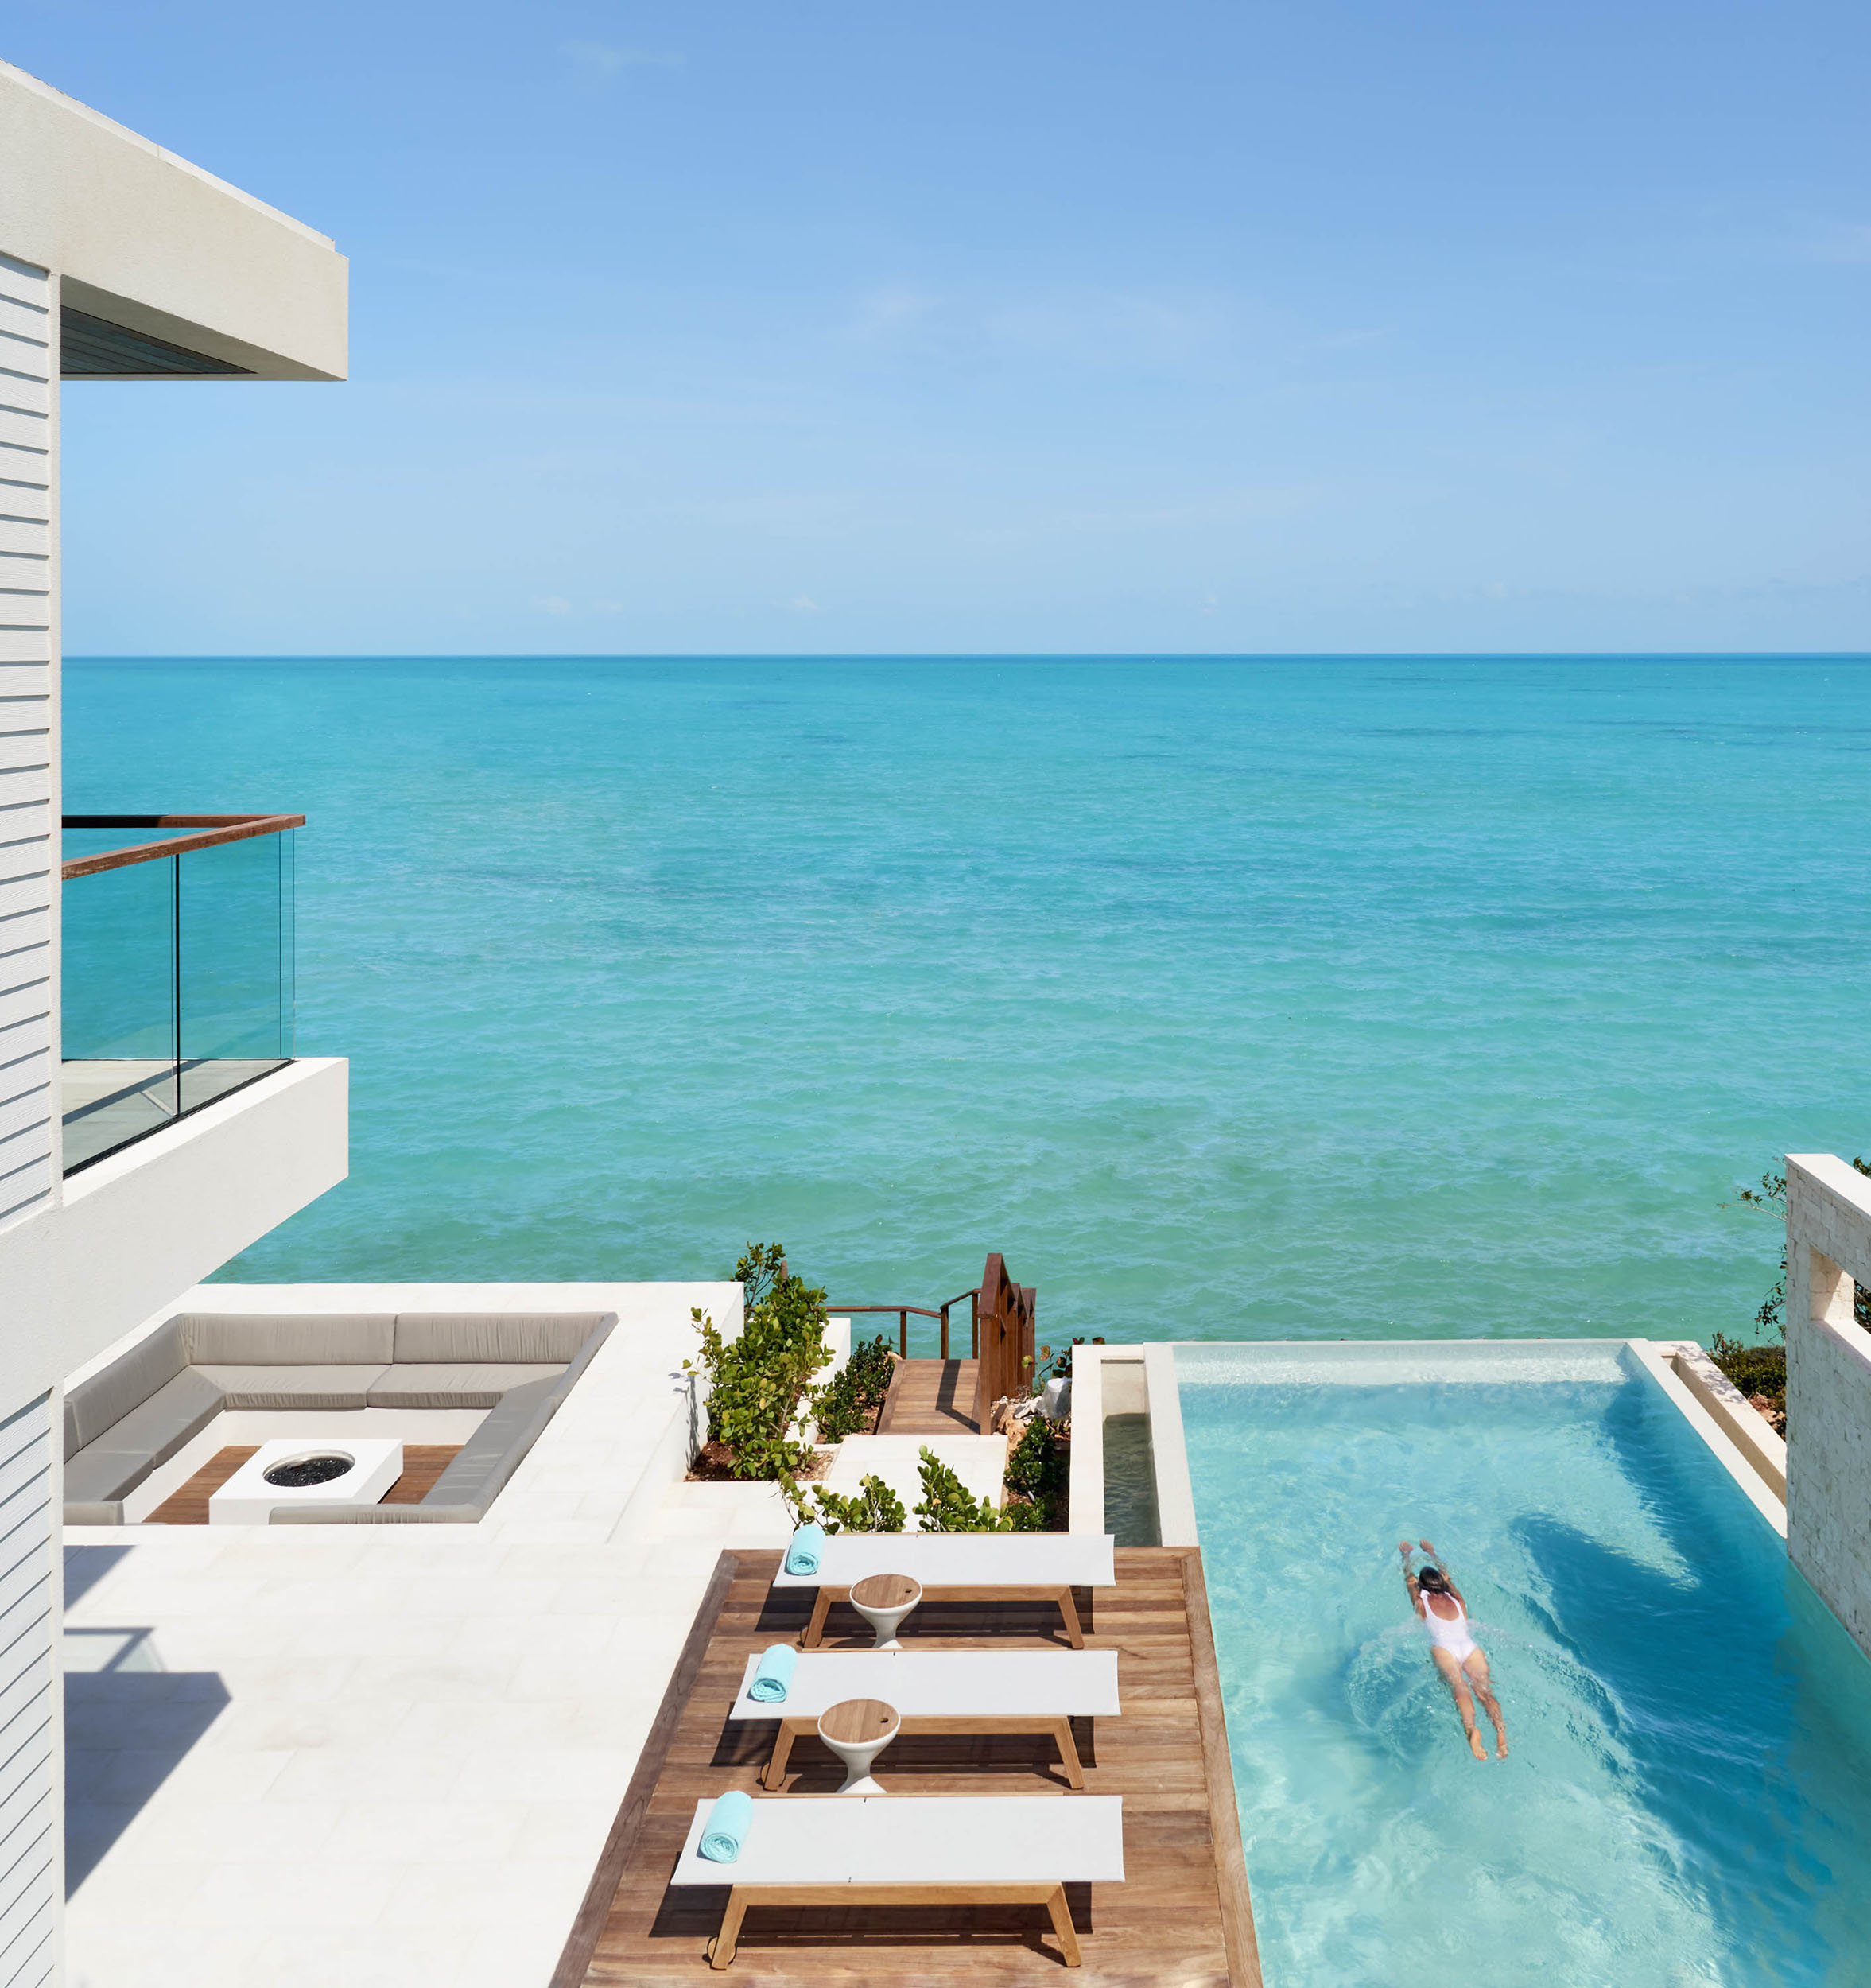 Wymara Villas - view from one of the upstair balconies, with fire pit, deck and infinity pool